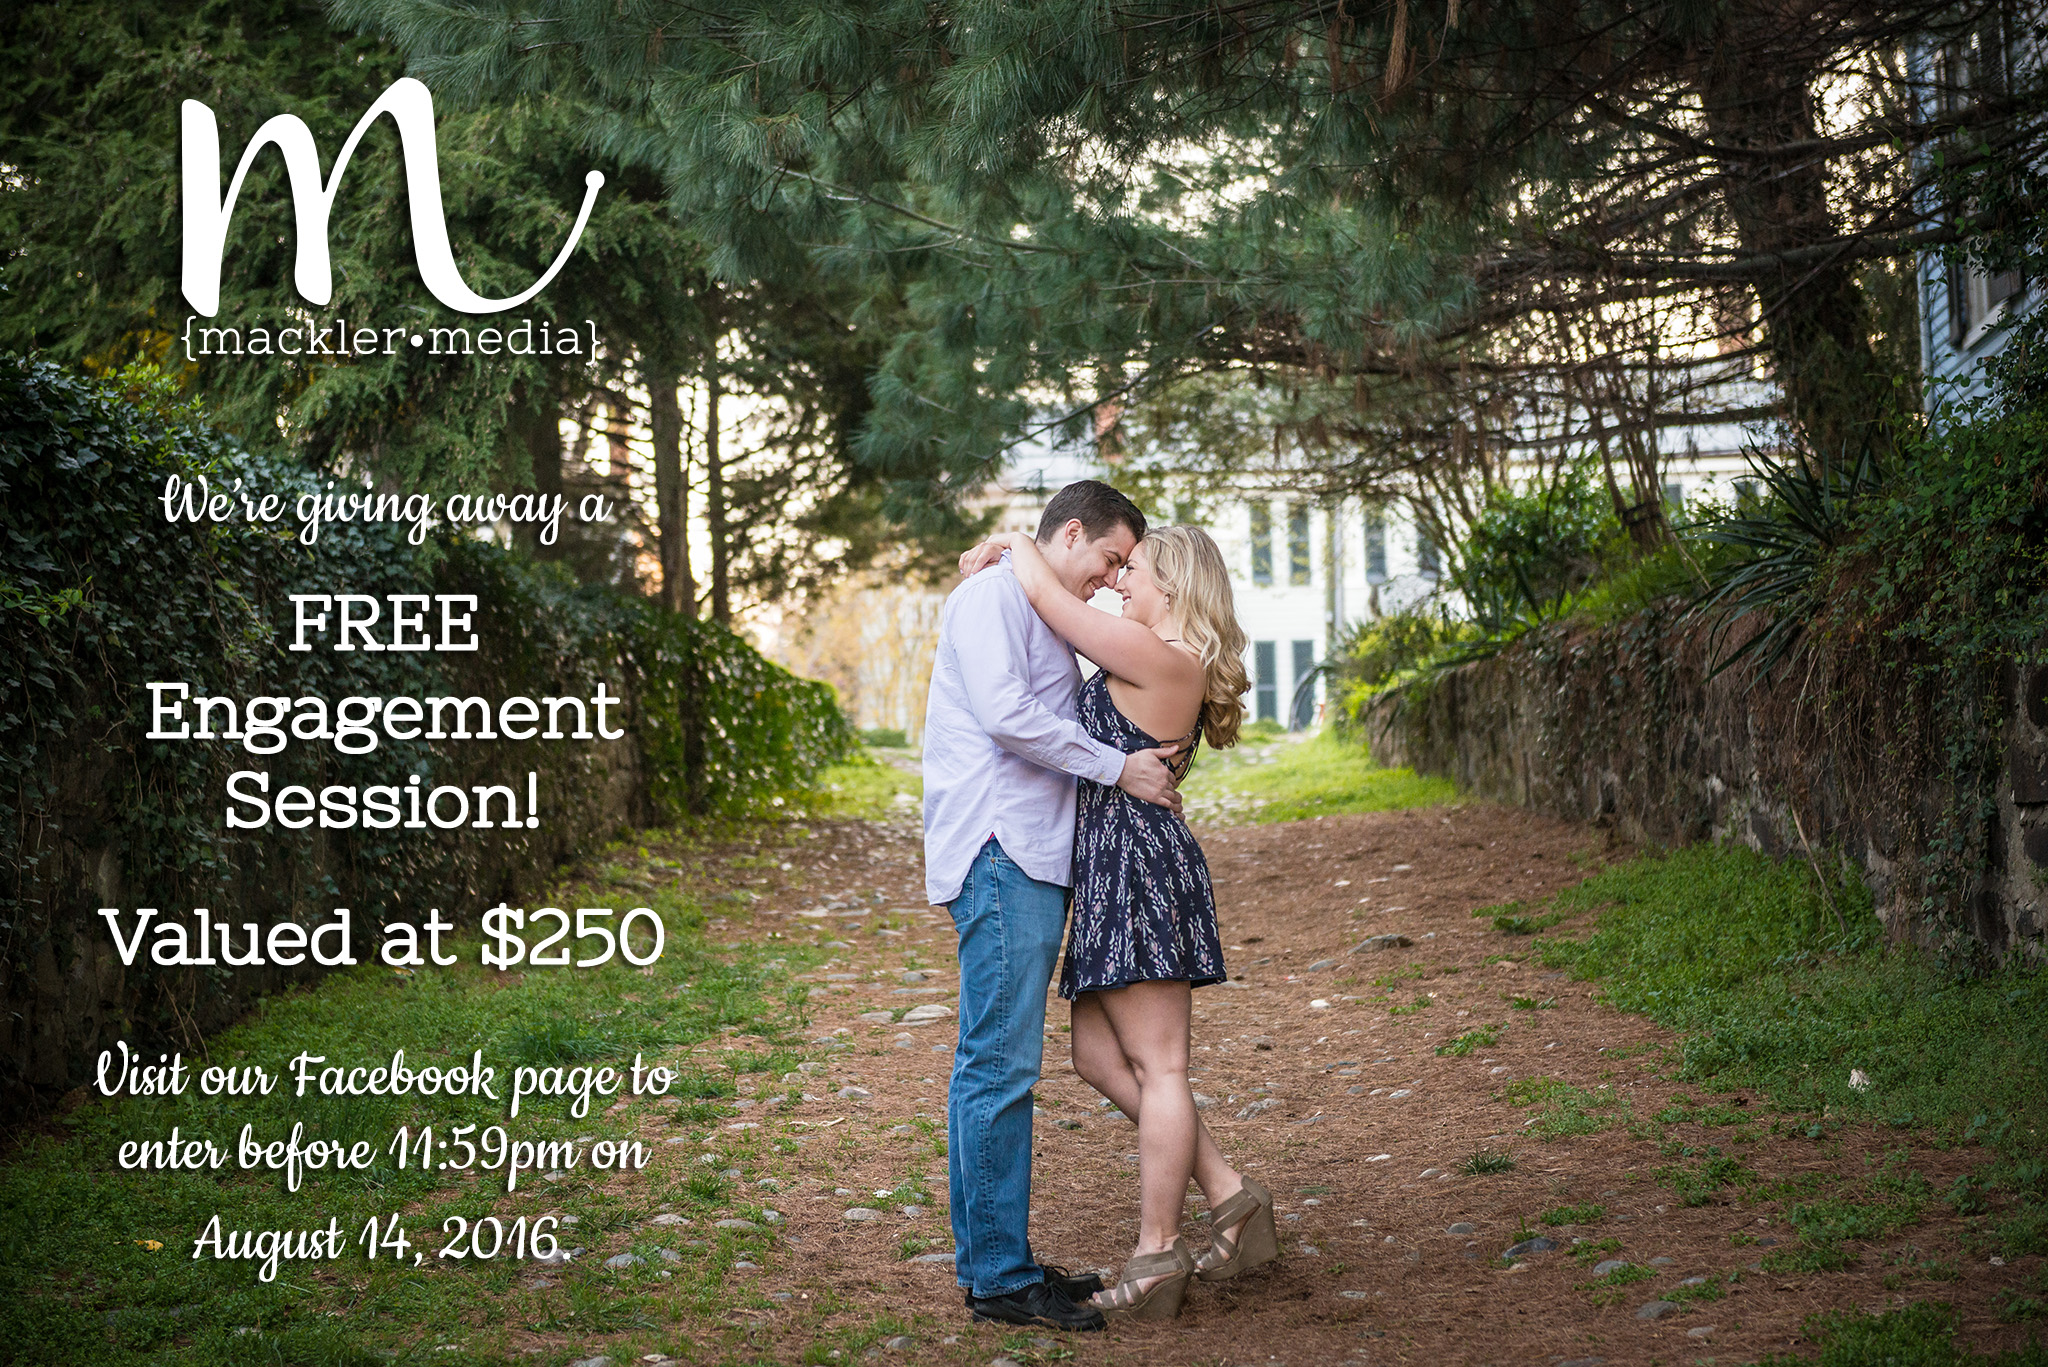 free engagement session giveaway